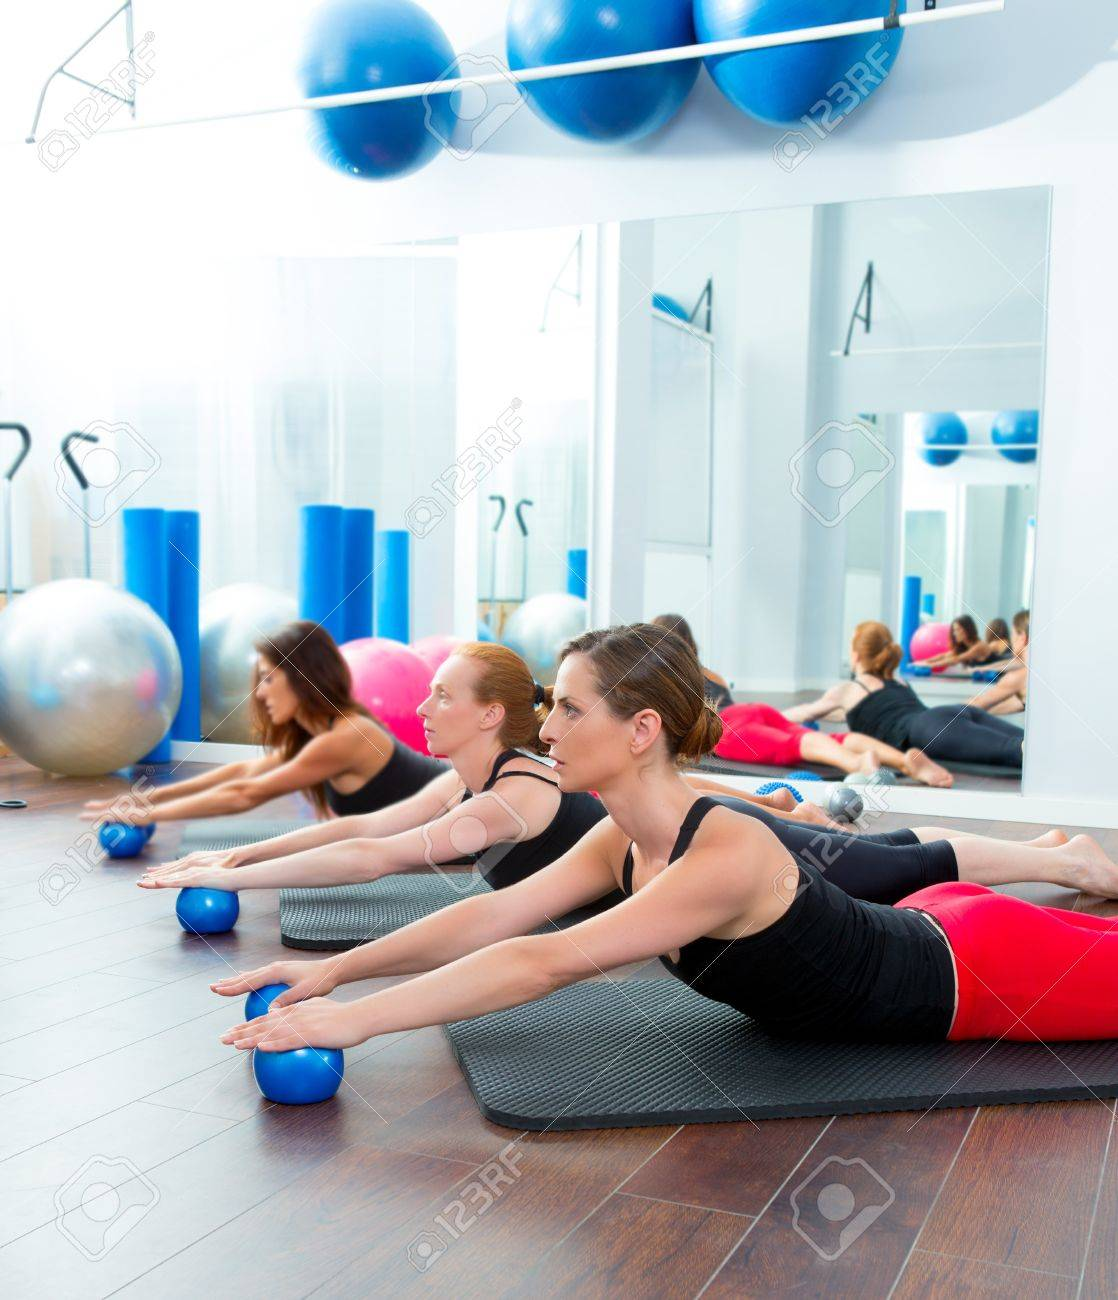 aerobics pilates women with toning balls in a row on fitness stockaerobics pilates women with toning balls in a row on fitness class stock photo 15444279